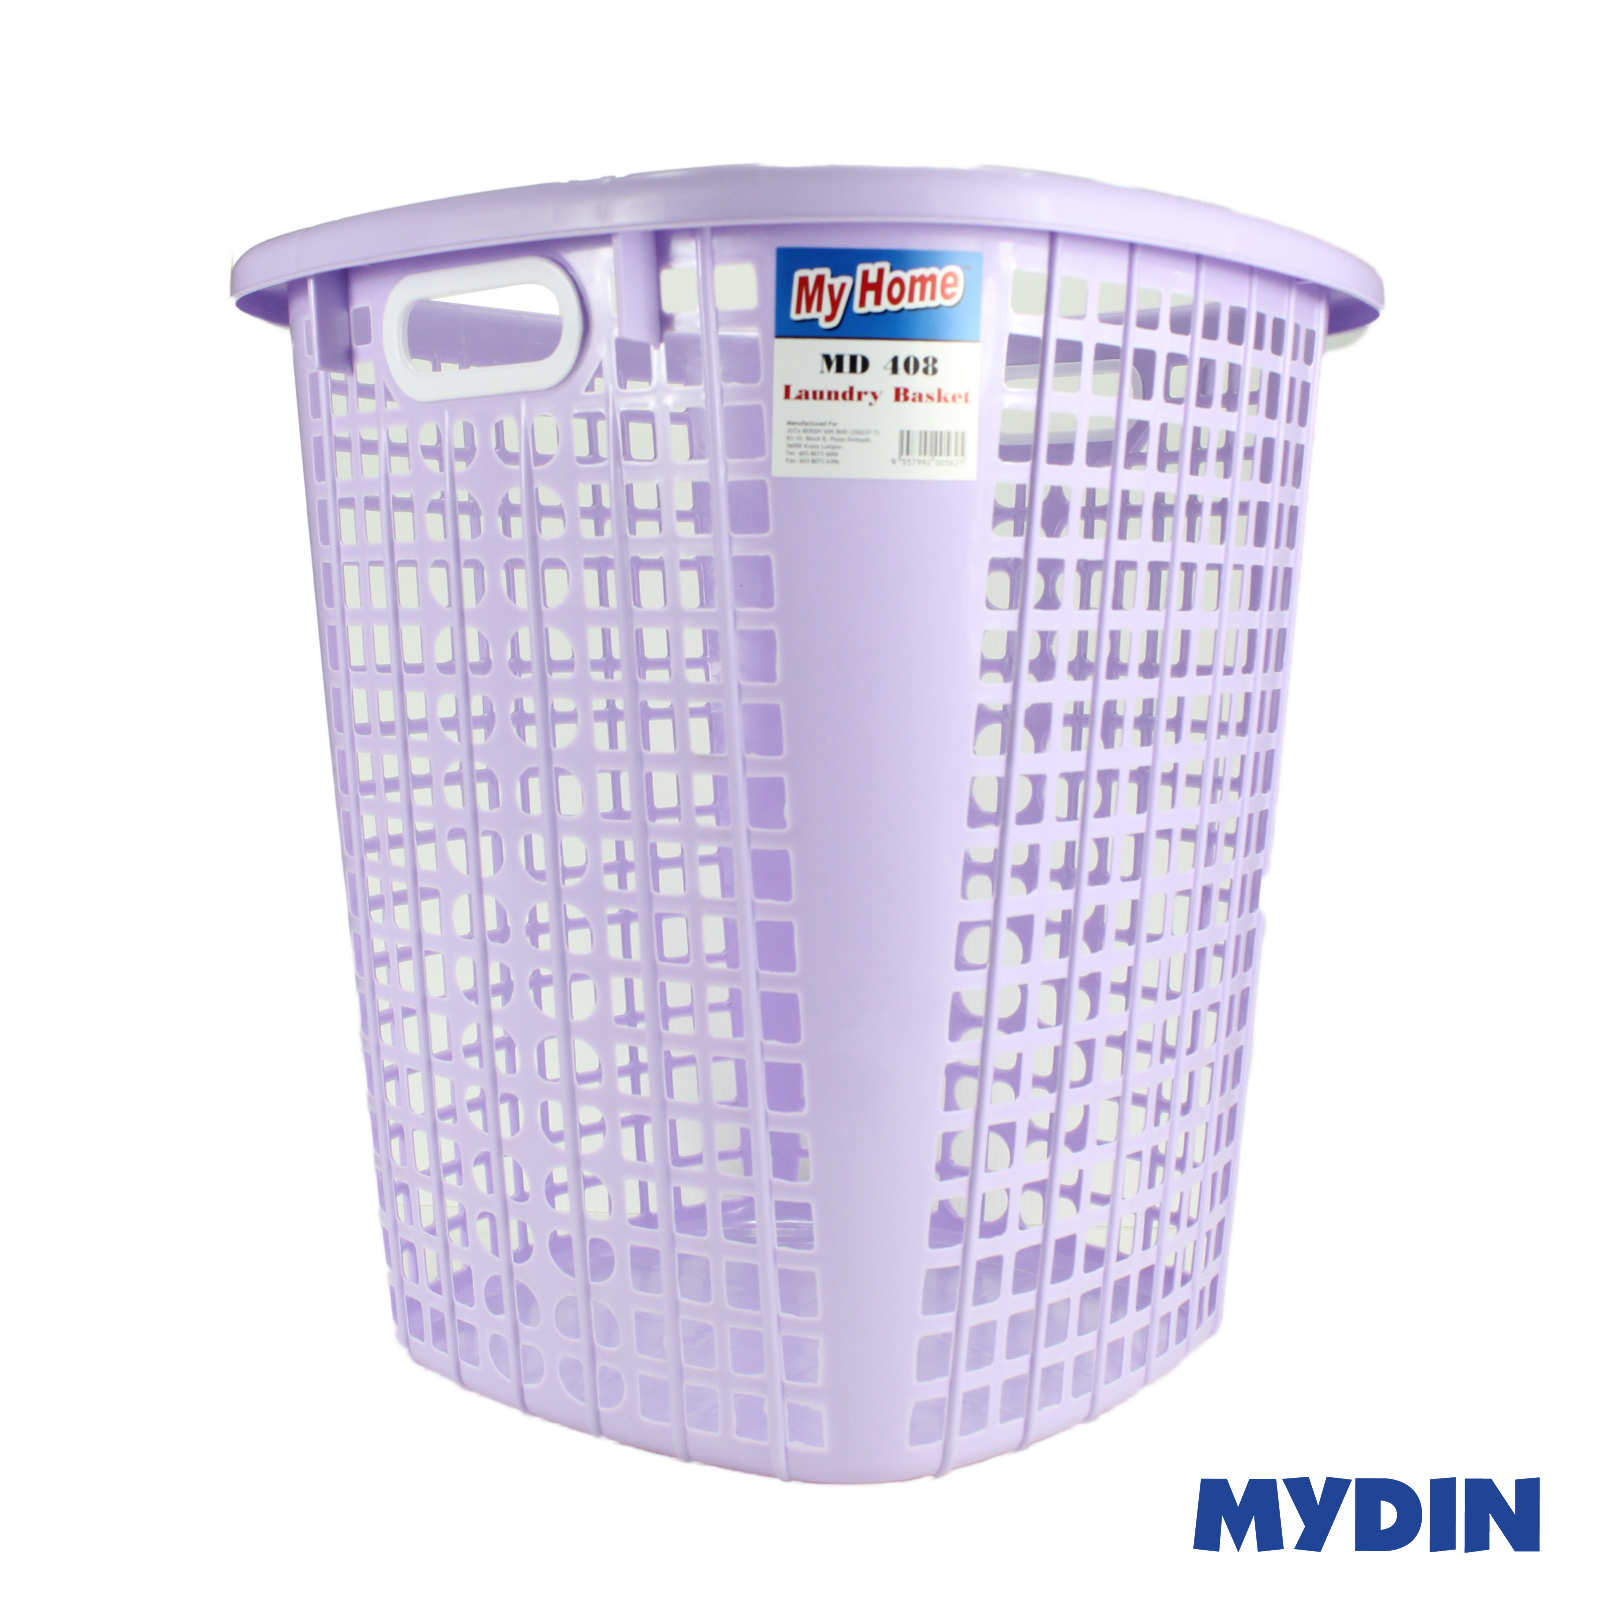 My Home Laundry Basket (750ml) MD408